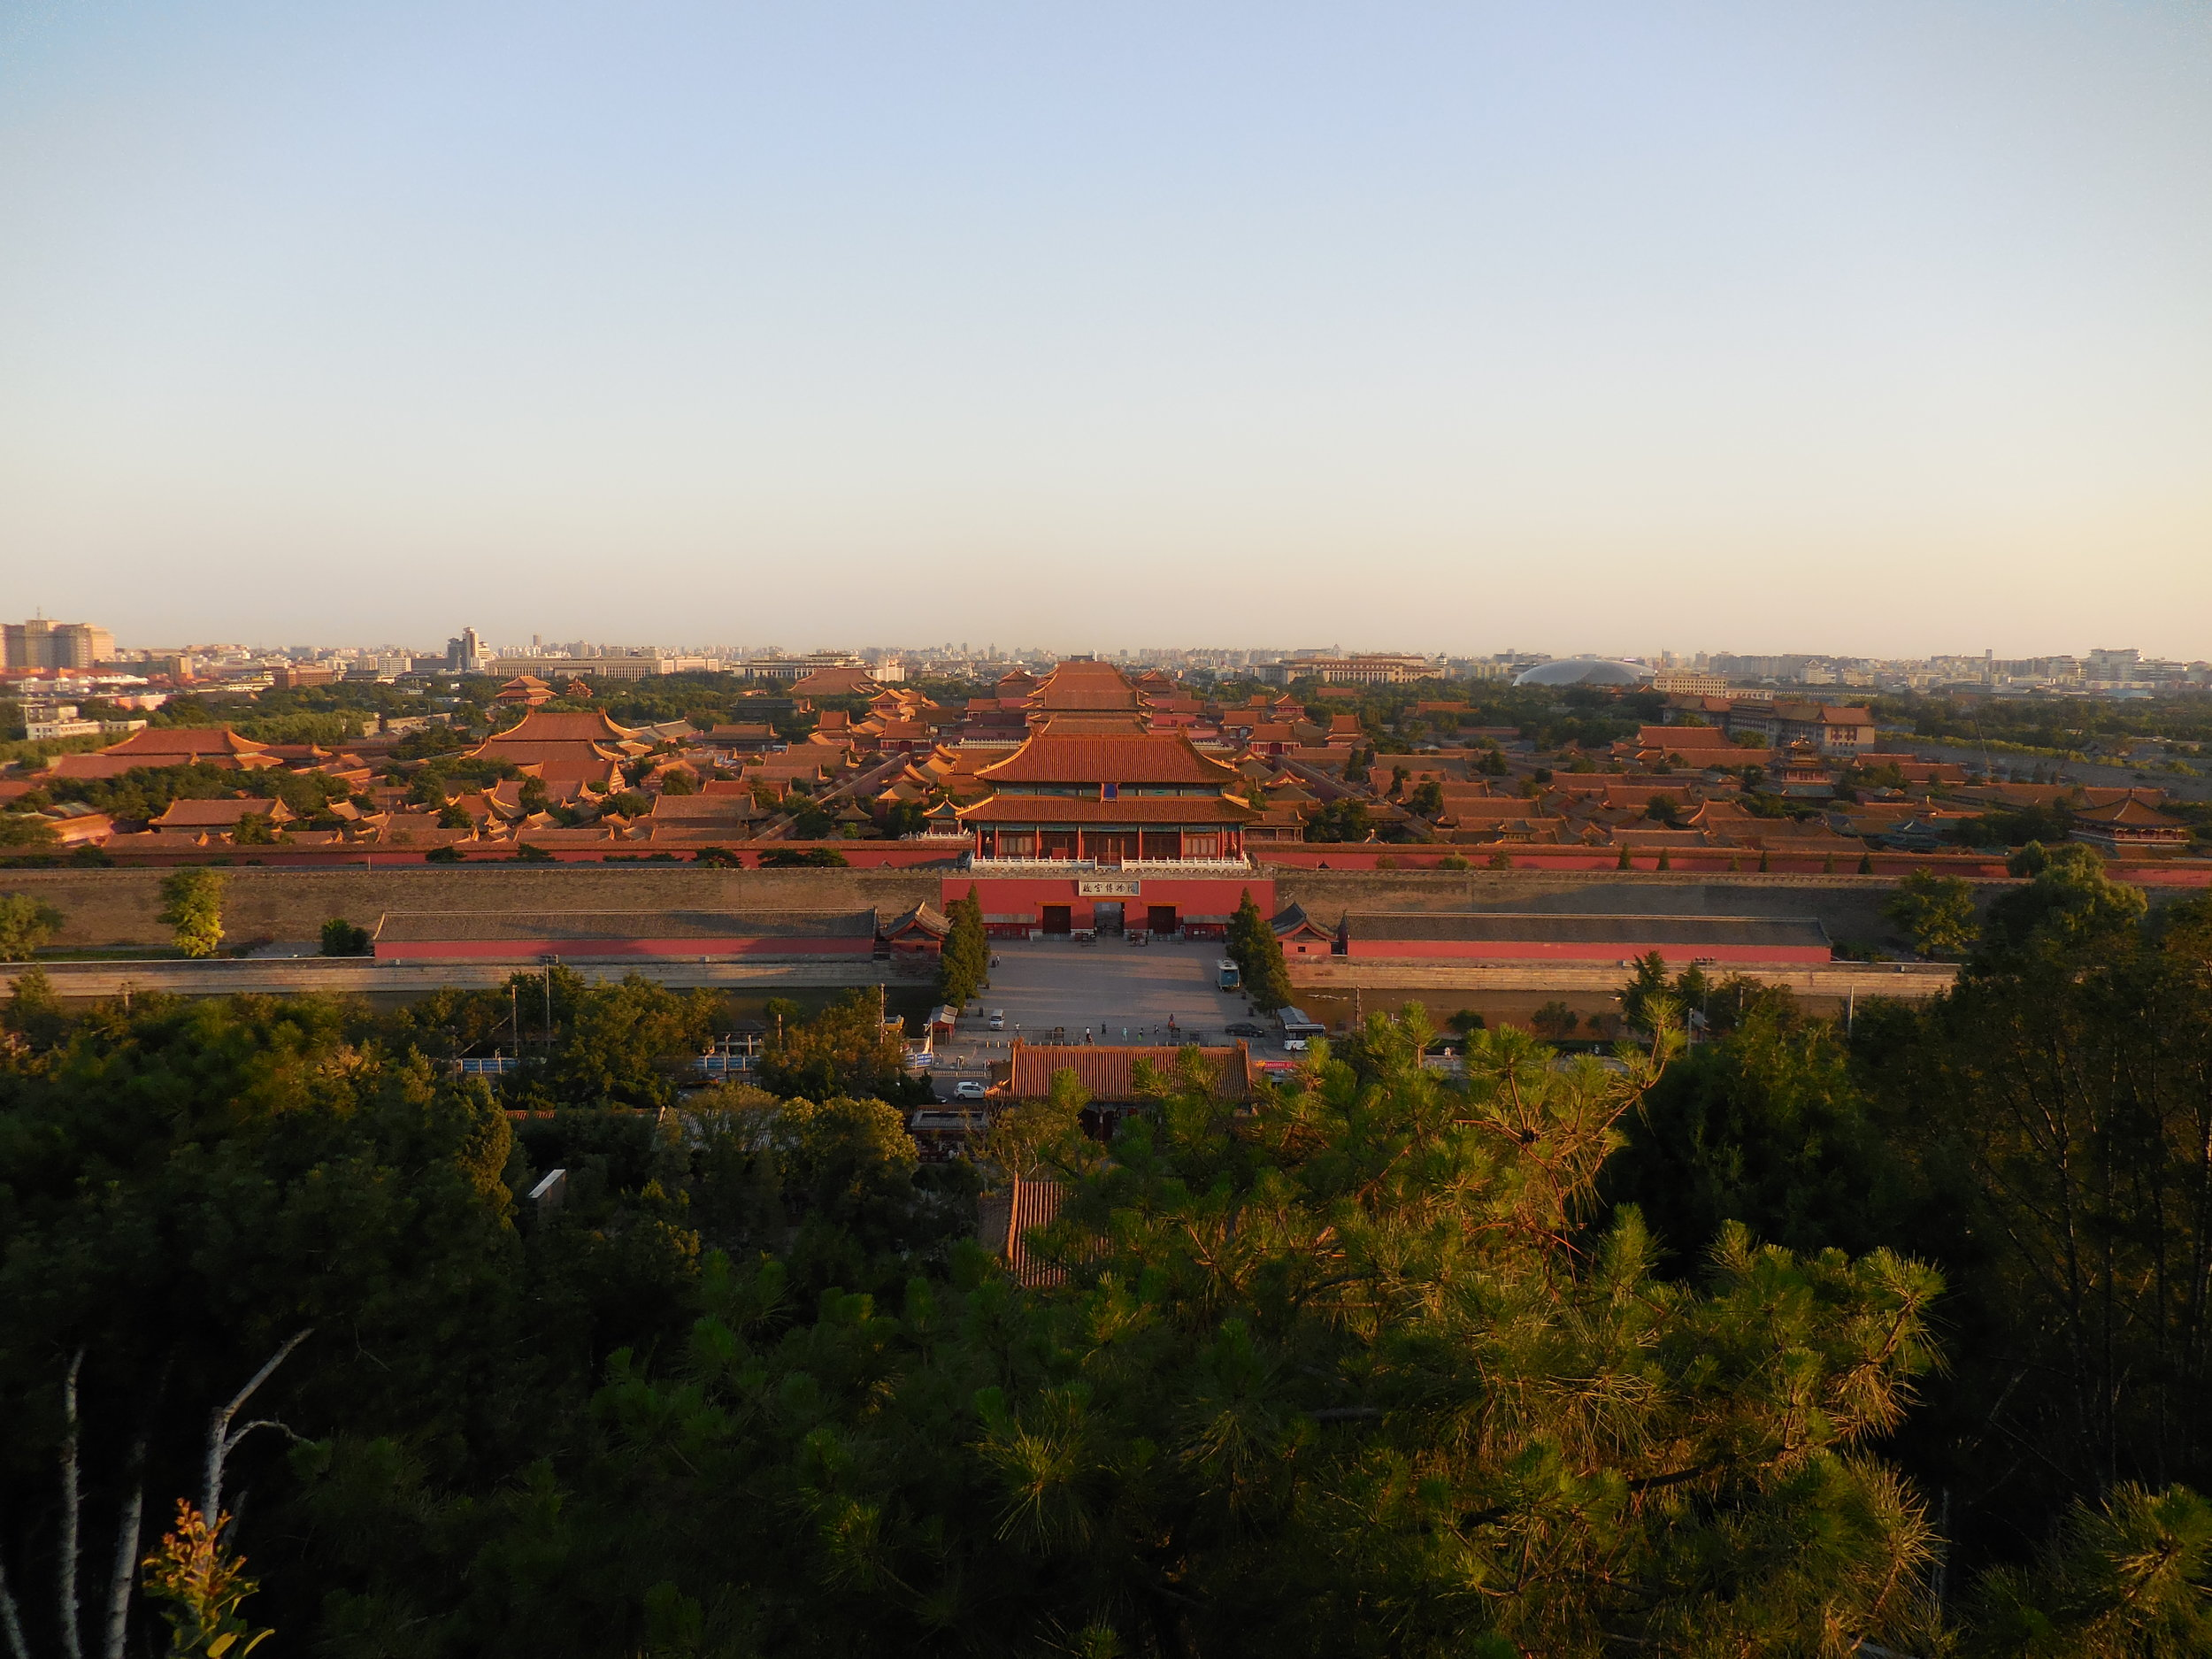 Looking south from the Imperial Gardens toward the Forbidden City. Notice how the entire complex is organized around a strong major axis and locates all of the larger main buildings. This planning philosophy is a direct motive from Confucian ideals and rigor.